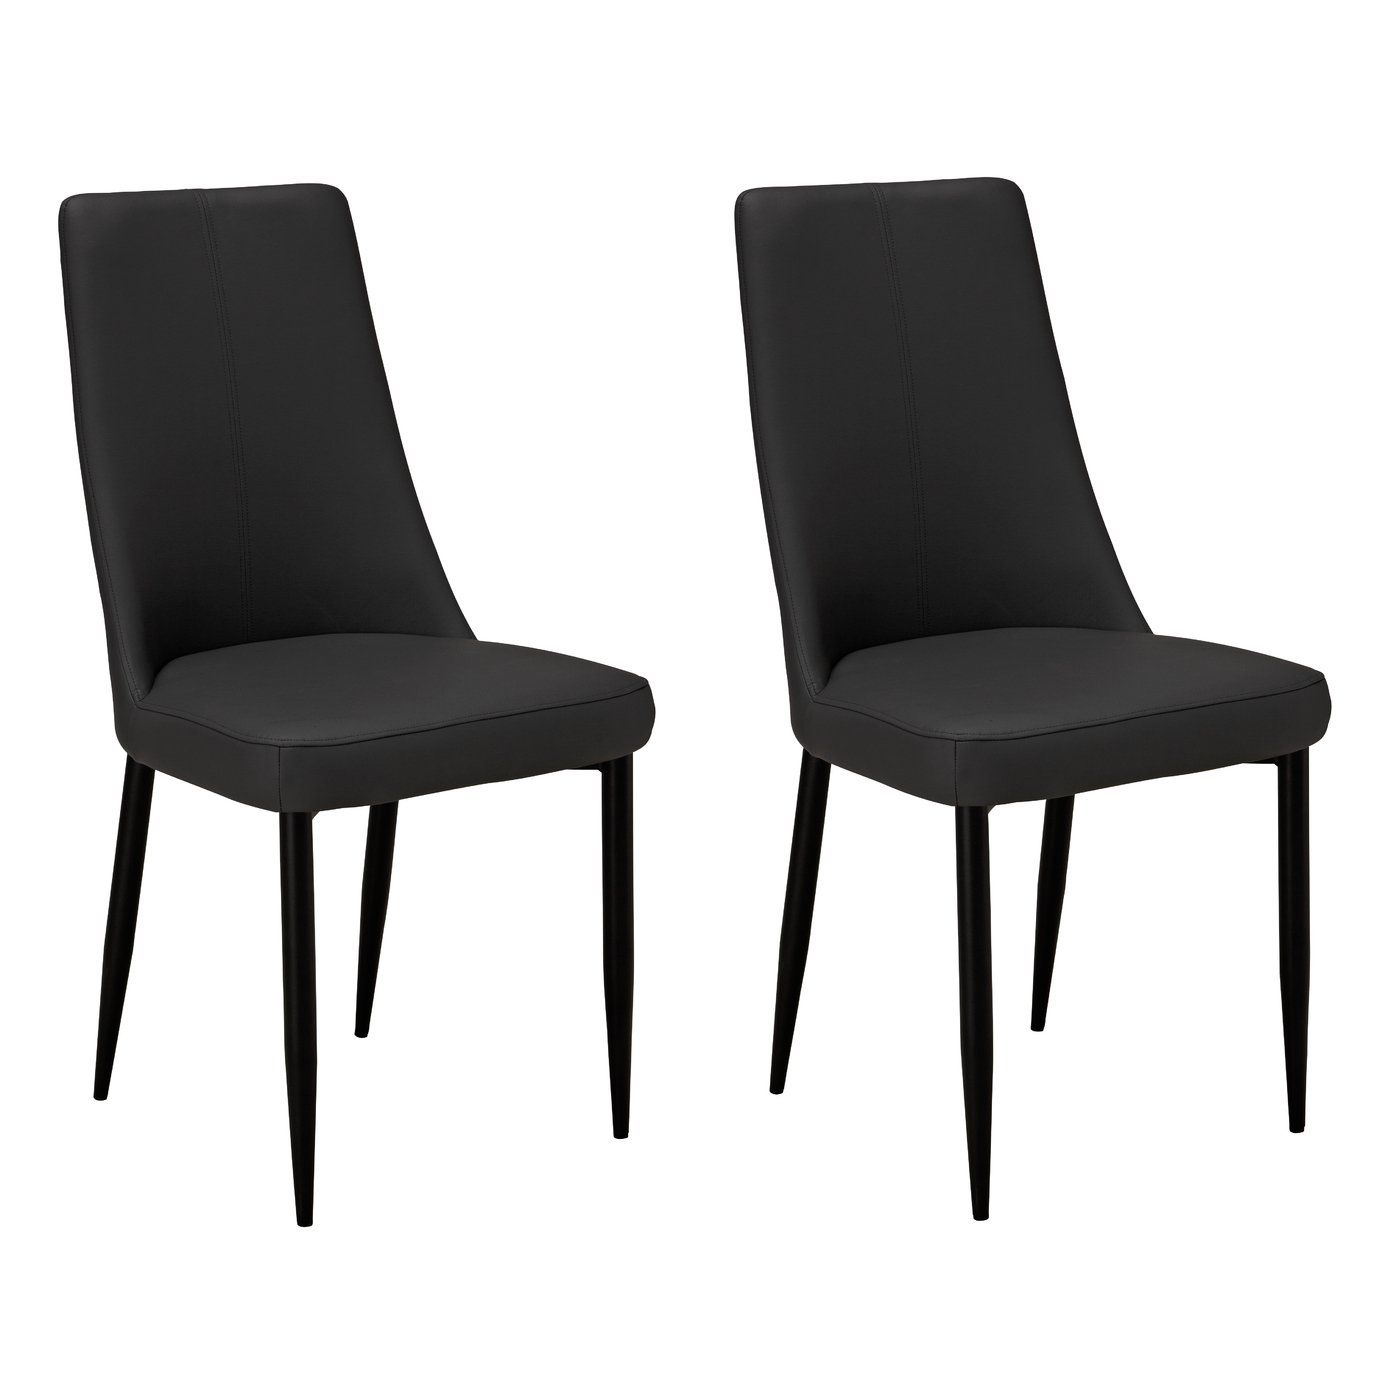 Buy Argos Home Isla Pair Of Faux Leather Dining Chairs Charcoal